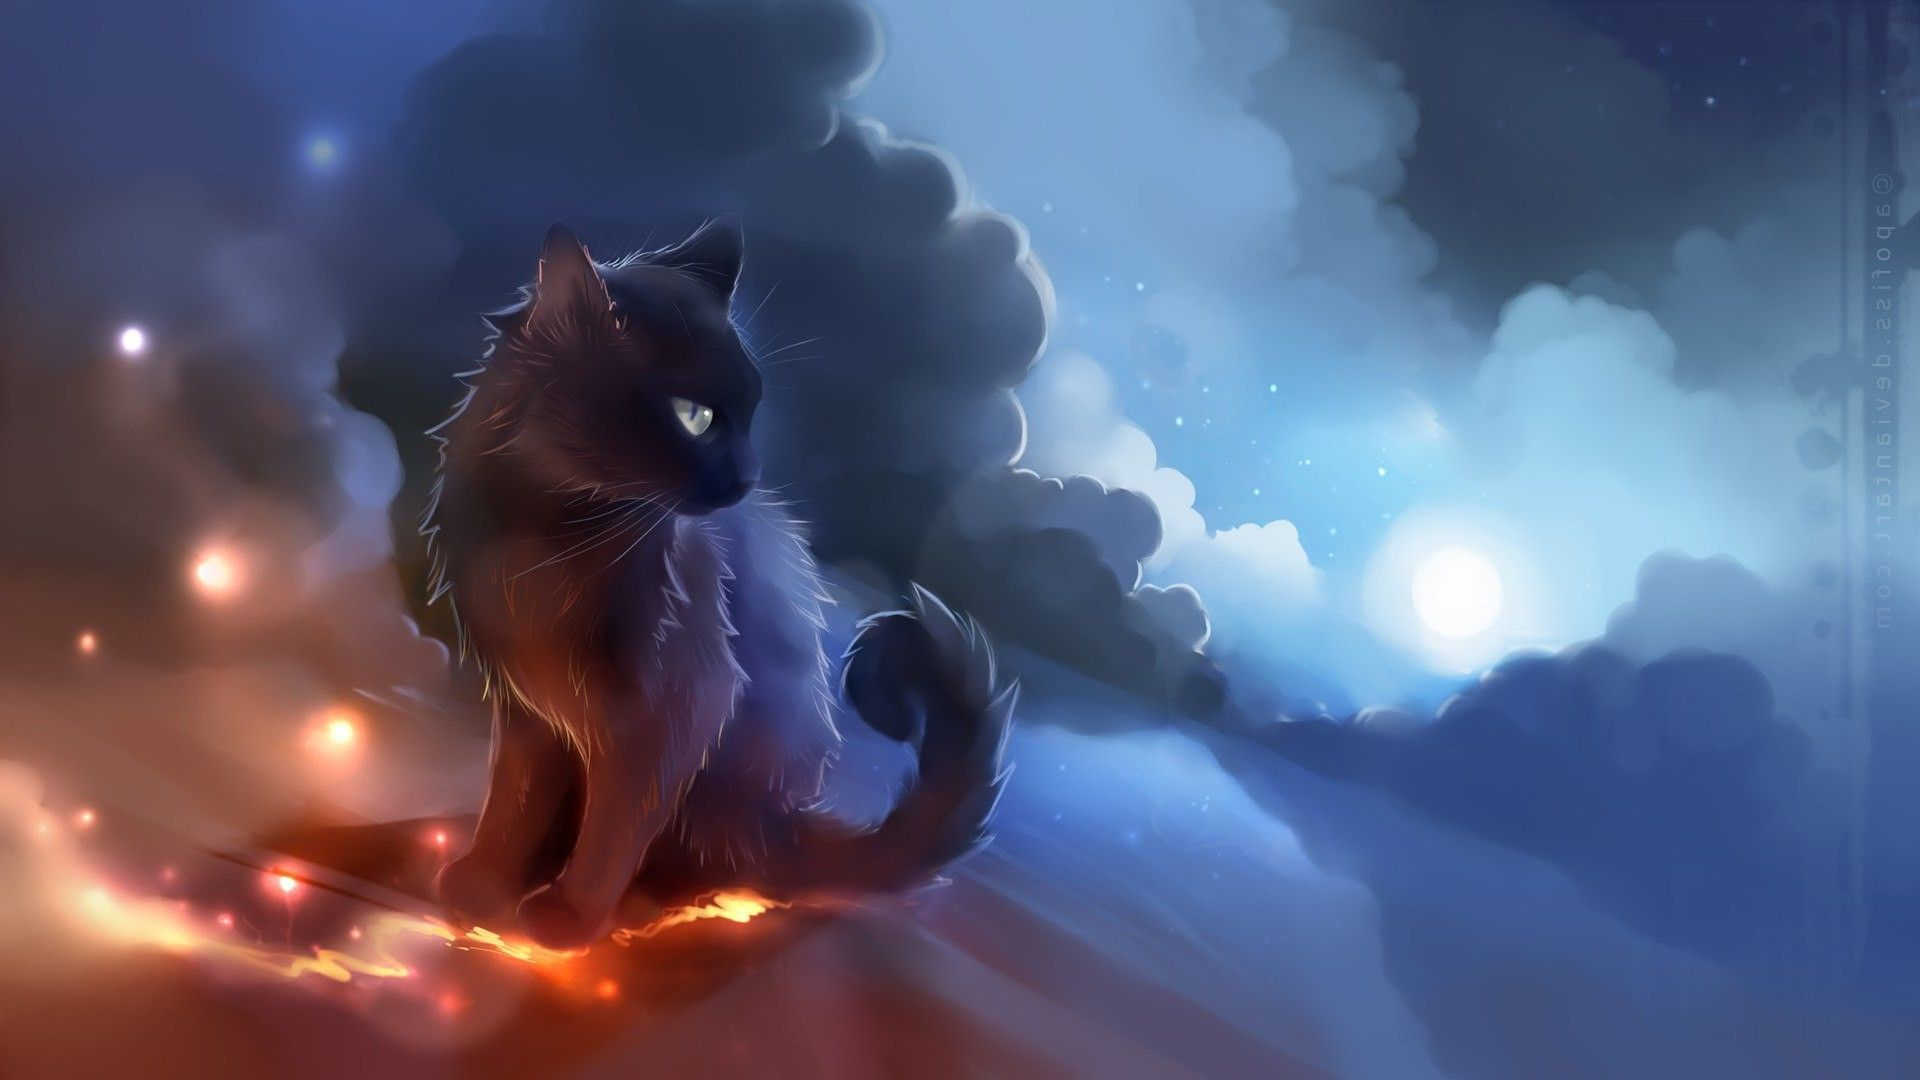 1920x1080 Warrior Cat Wallpapers Backgrounds 56 Images Warrior Cats Cute Anime Cat Cat Background